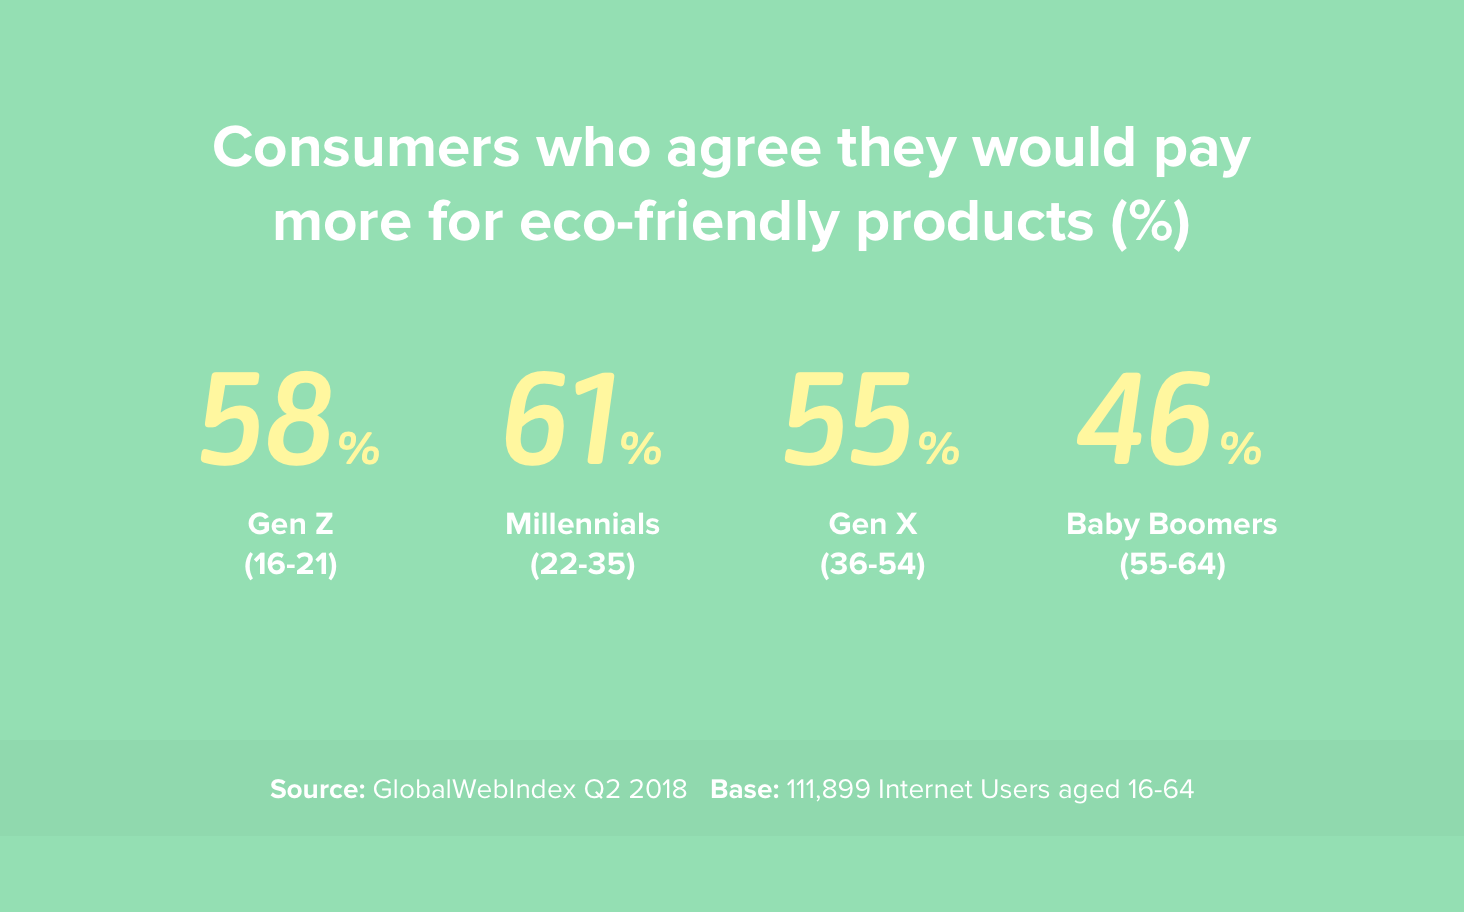 Consumers who would buy eco-friendly products